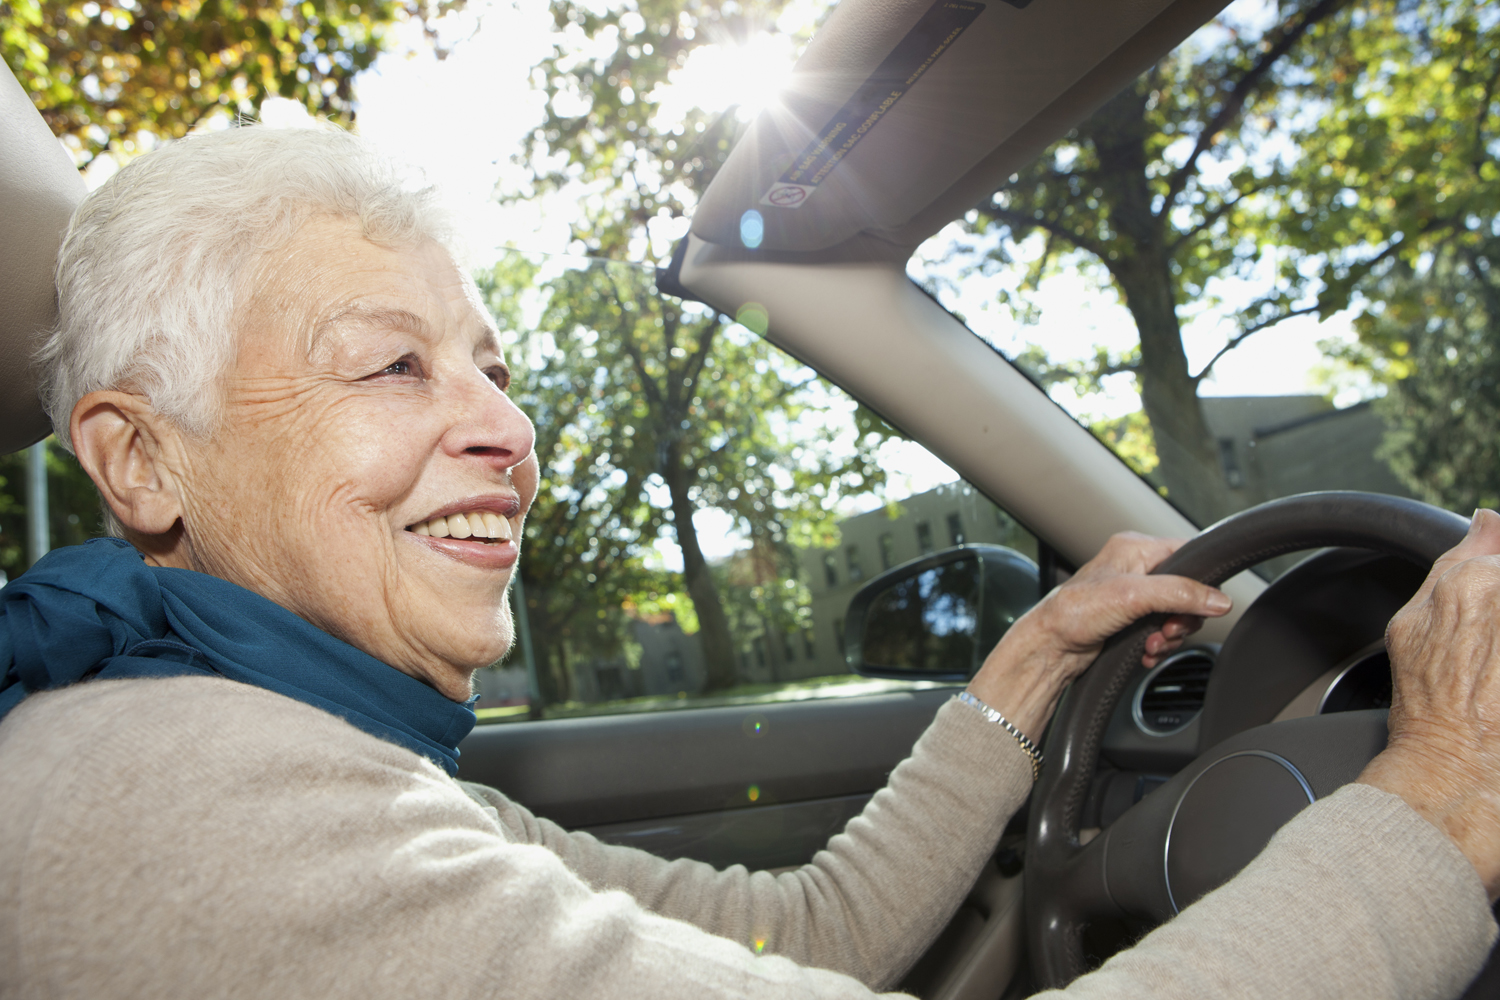 elderly driving research papers In denmark for elderly car drivers elderly driving research papers medical research elderly drivers dangers health and safety research papers school uniform debate research paper tim o'brien research paper driving old research paper narcotics outline.